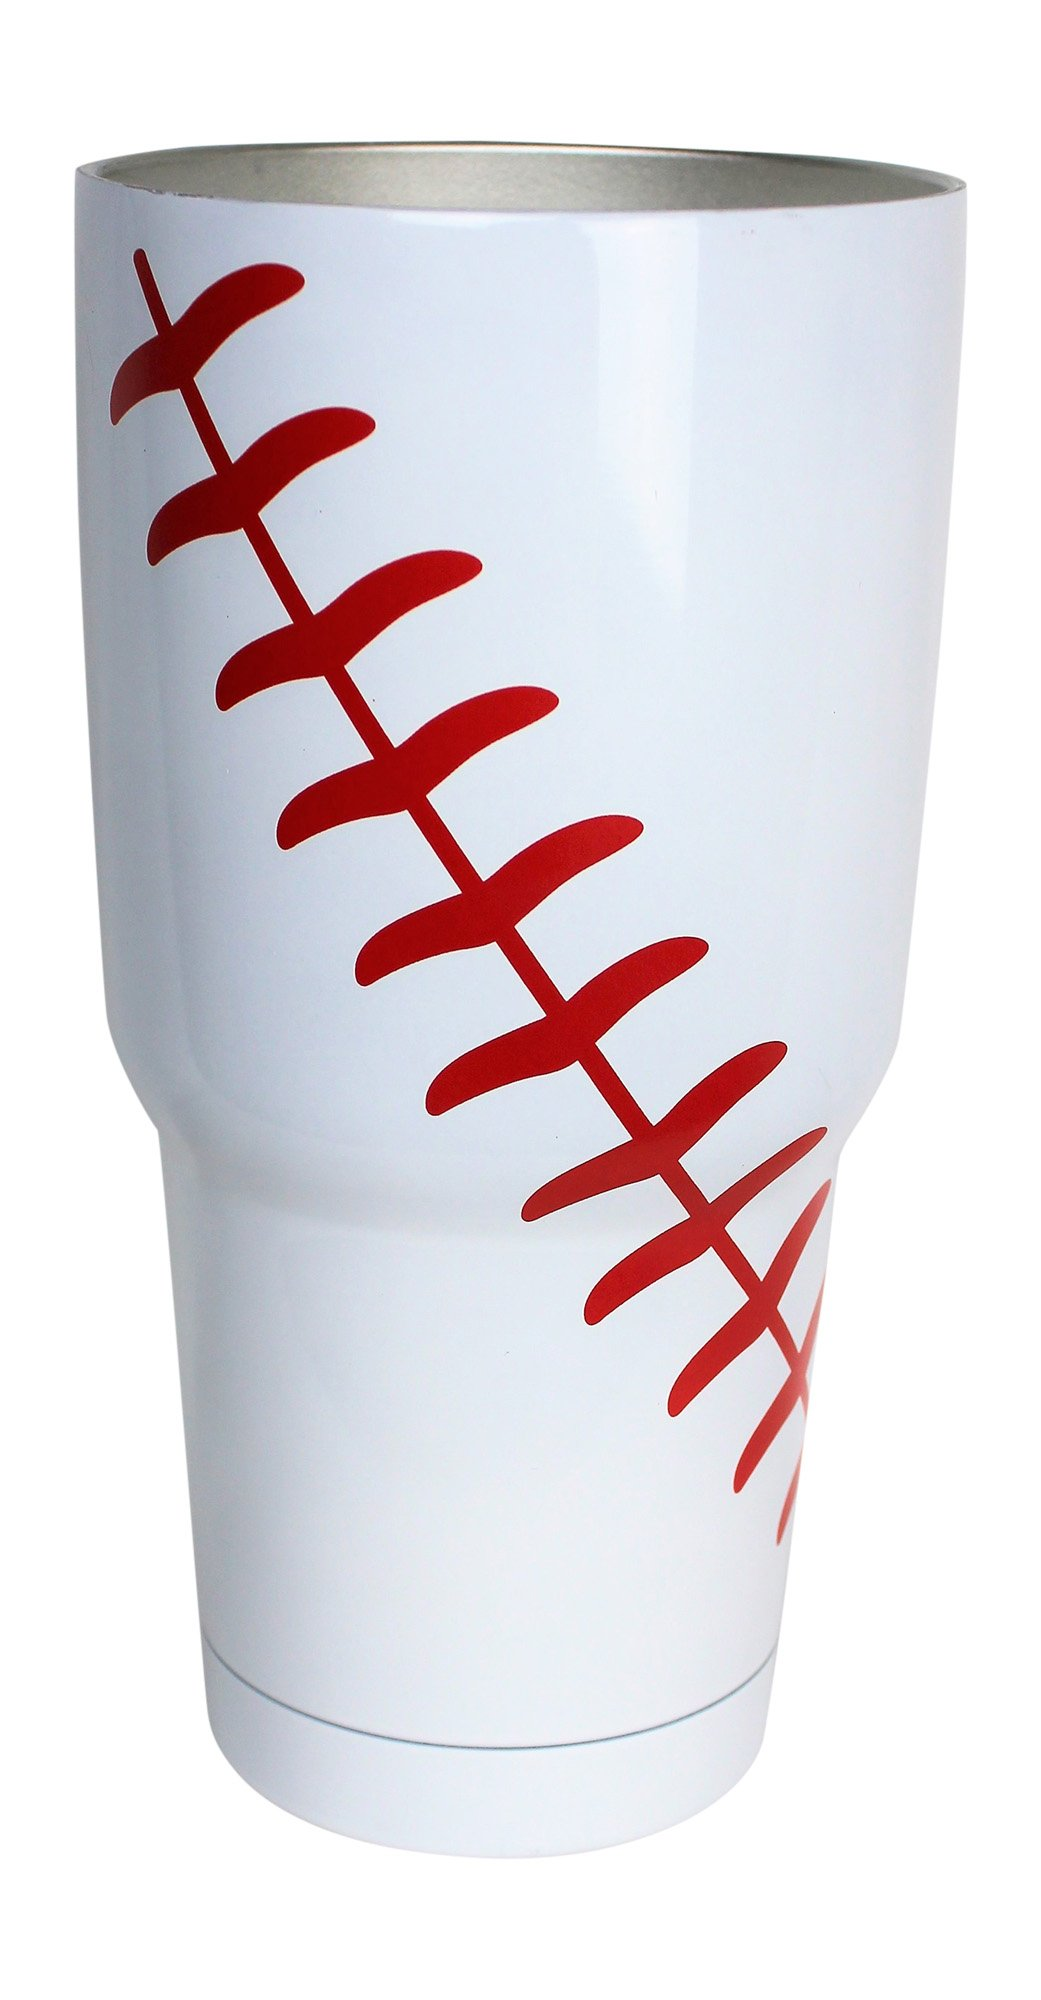 Baseball Tumbler Cup 30oz Gift for Mom Men Sports Travel Coffee Mug, Stainless Steel, Vacuum Insulated, Keeps Water Cold for 24, Hot for 12 hours (Baseball) by KnitPopShop (Image #1)